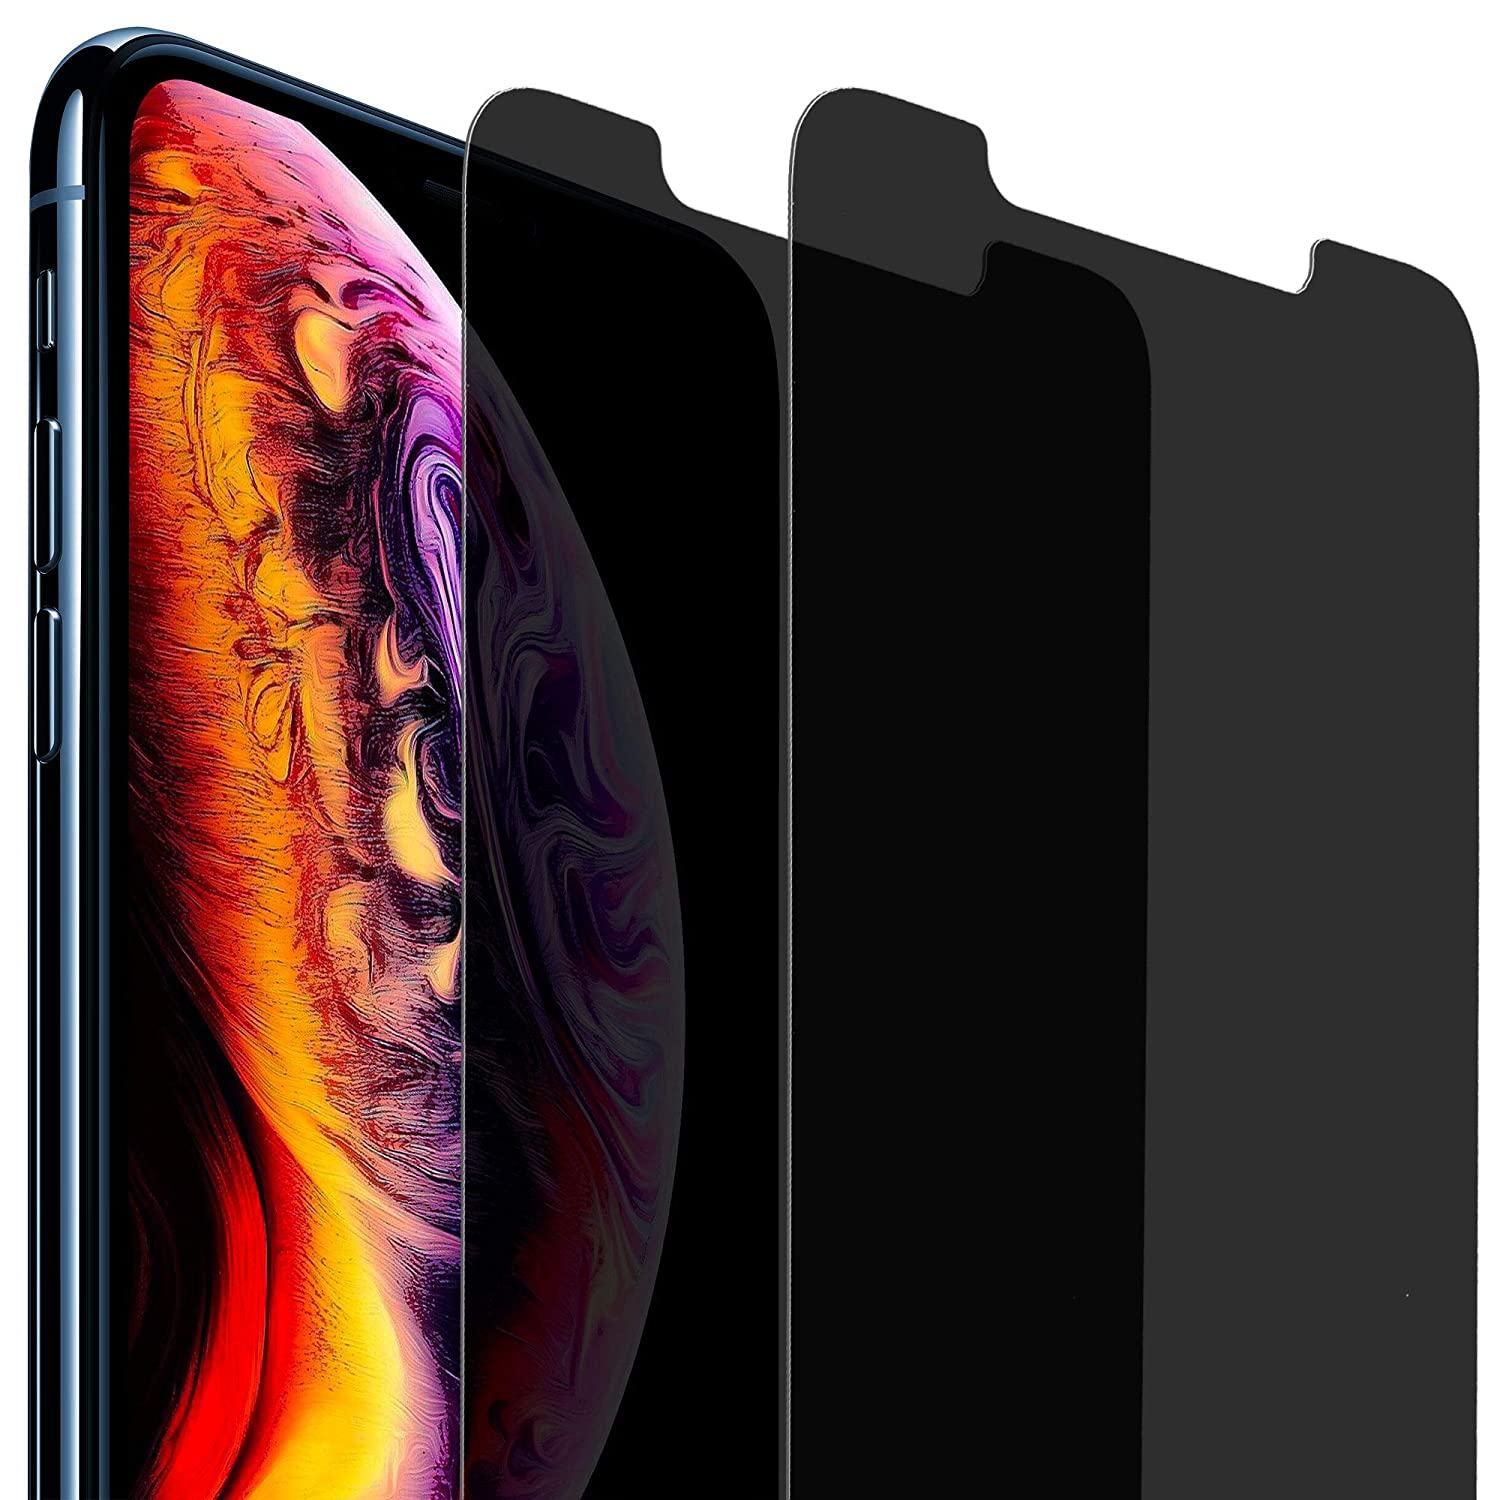 Privacy Screen Protector for Apple iPhone Xs Max, 6.5 Inches, Anti-Spy Tempered Glass Film, 2-Pack Blitzby 1